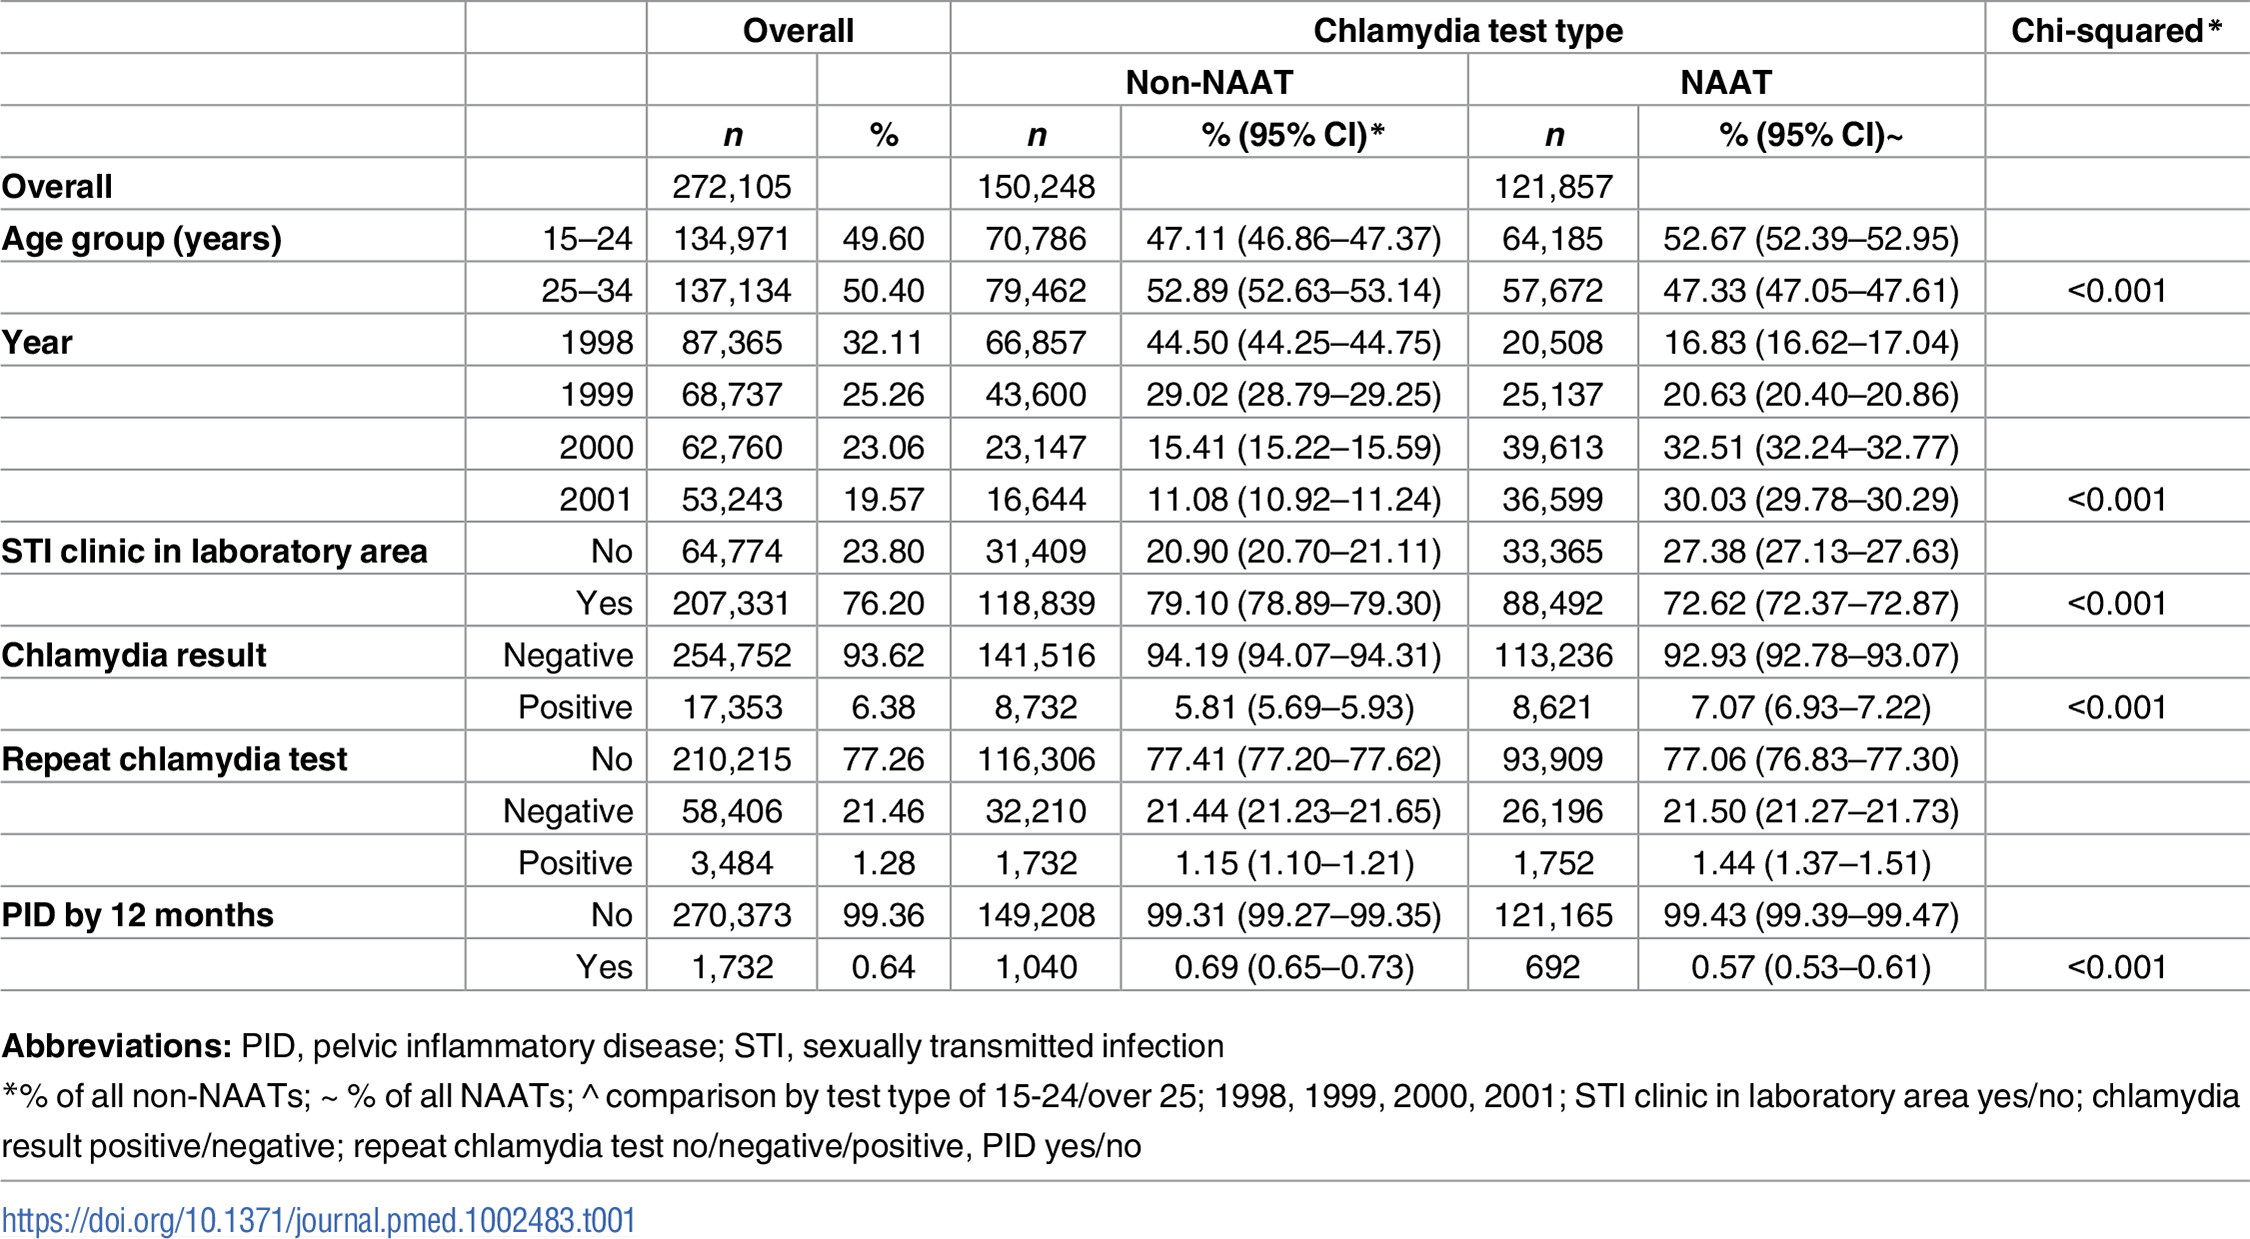 Description of the study cohort (1998–2001) by chlamydia test type.